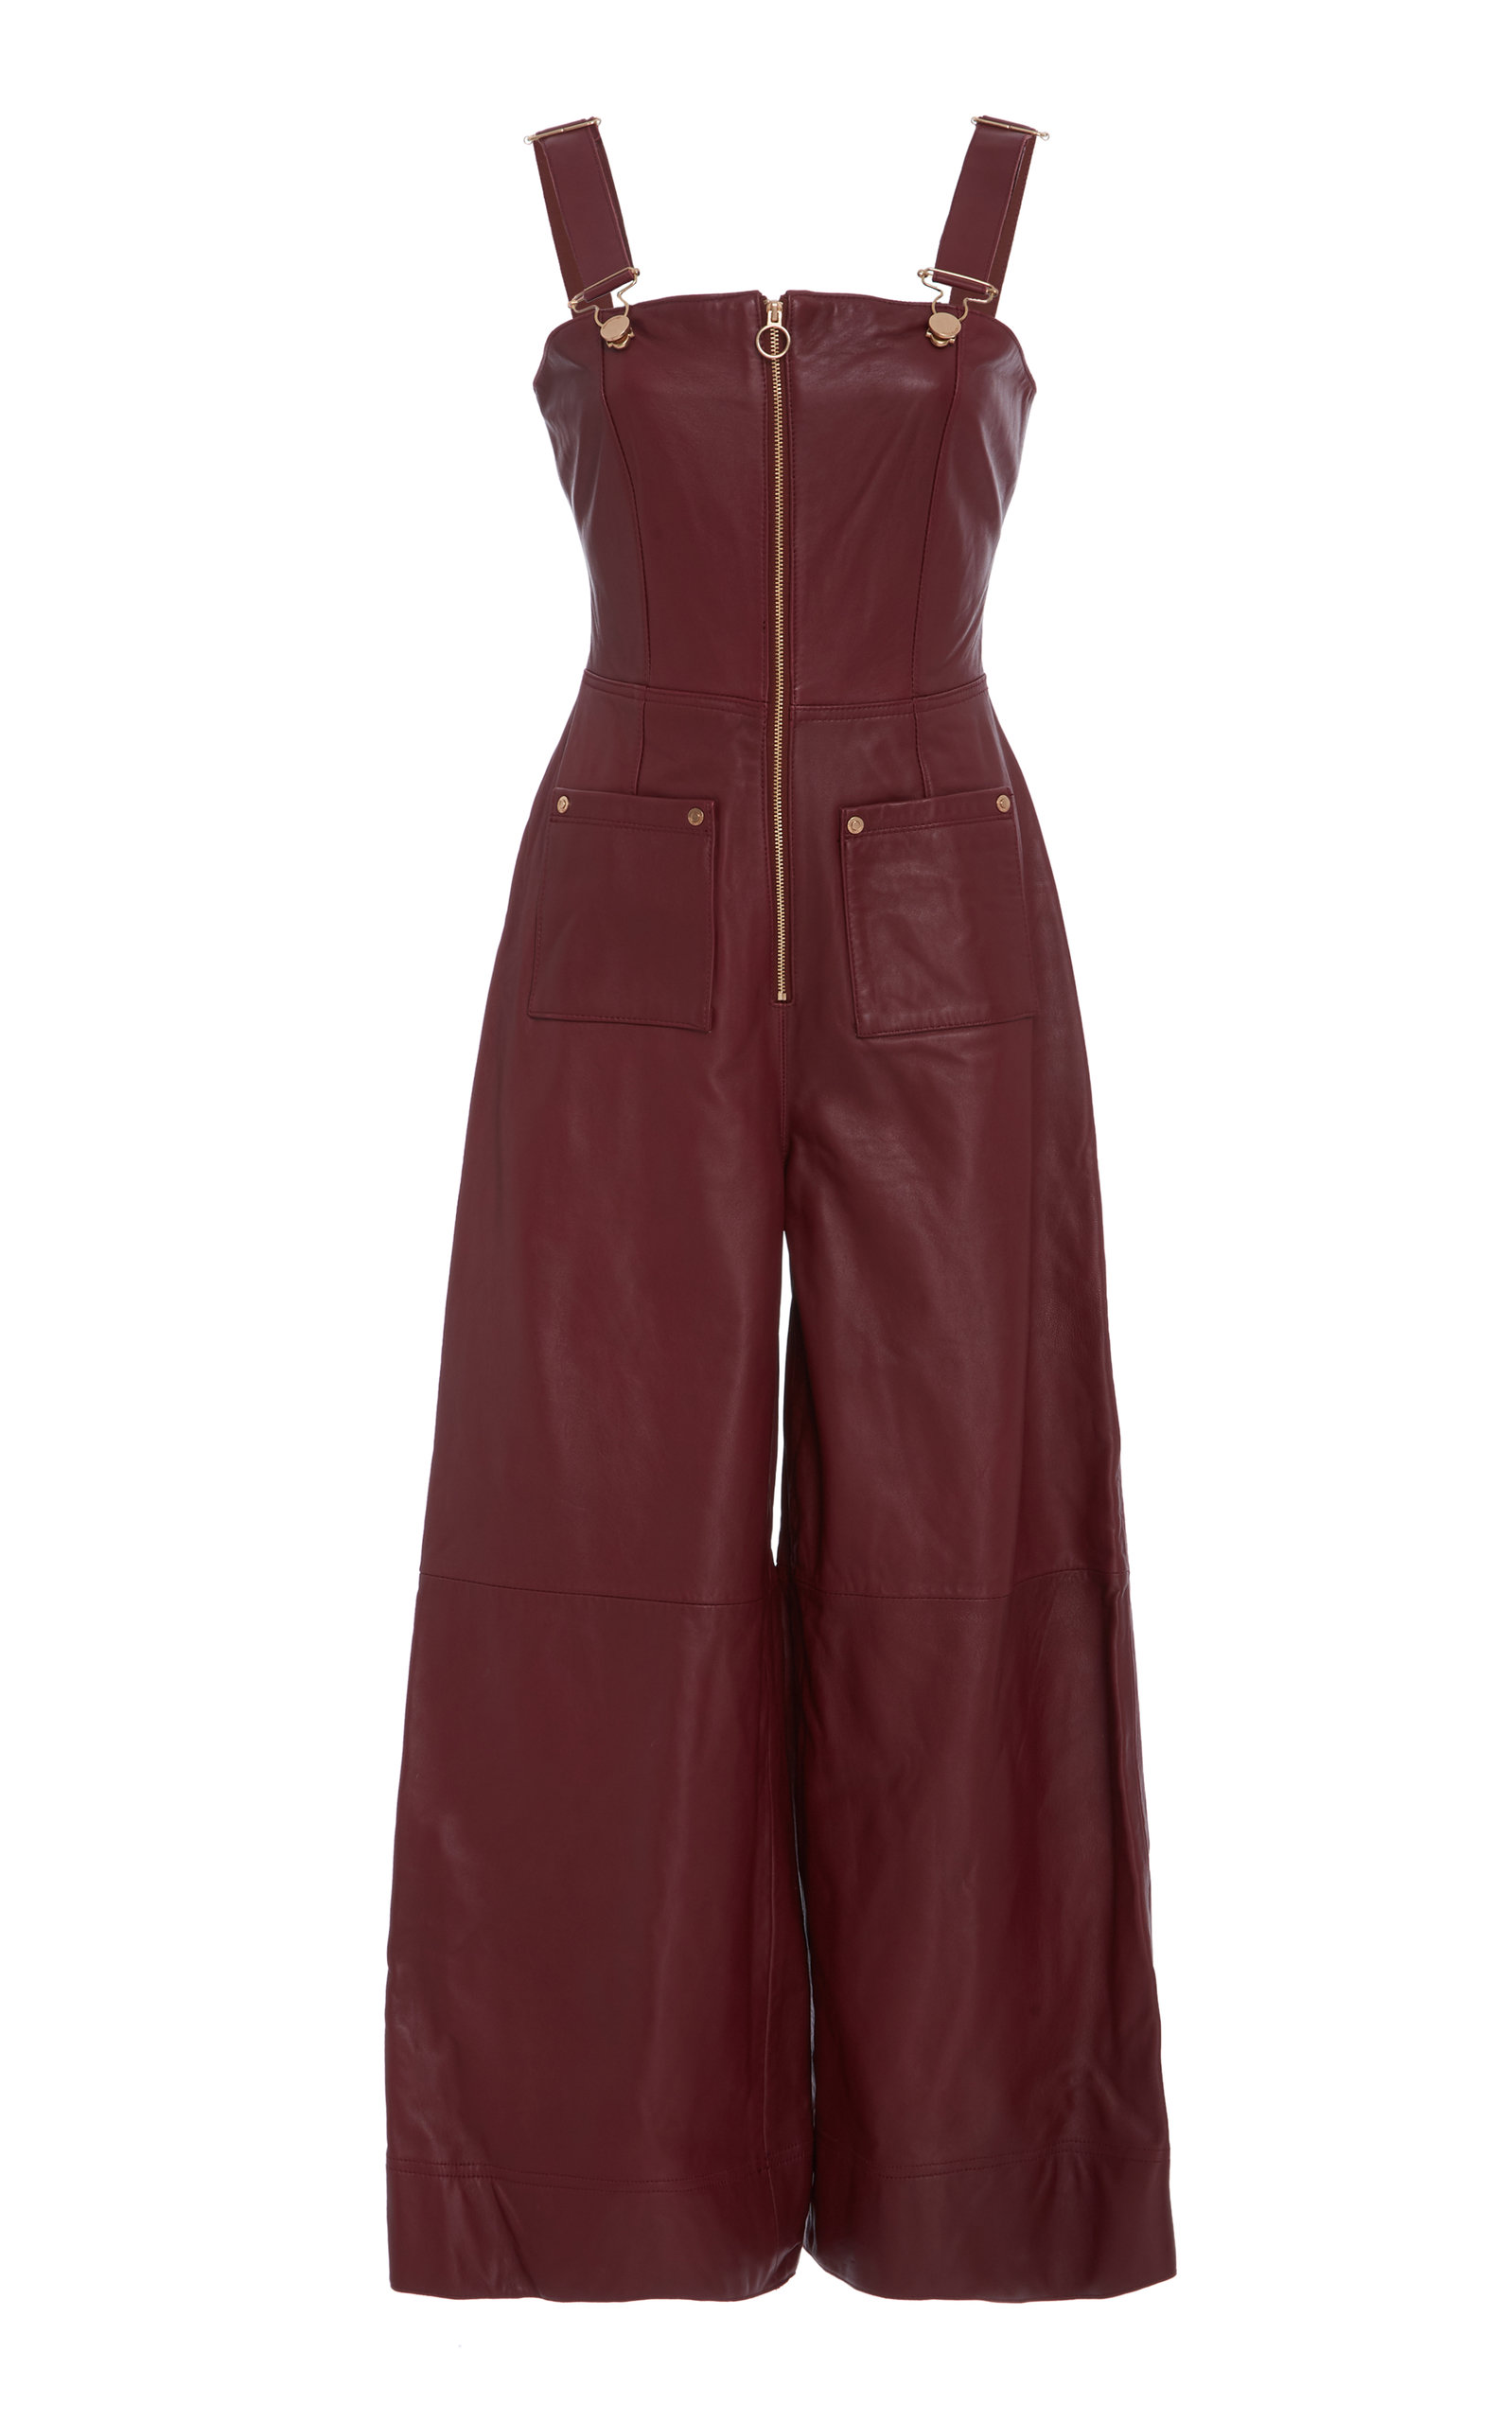 8eafad7abae0 Shop Alice Mccall Heartbreaker Jumpsuit In Burgundy